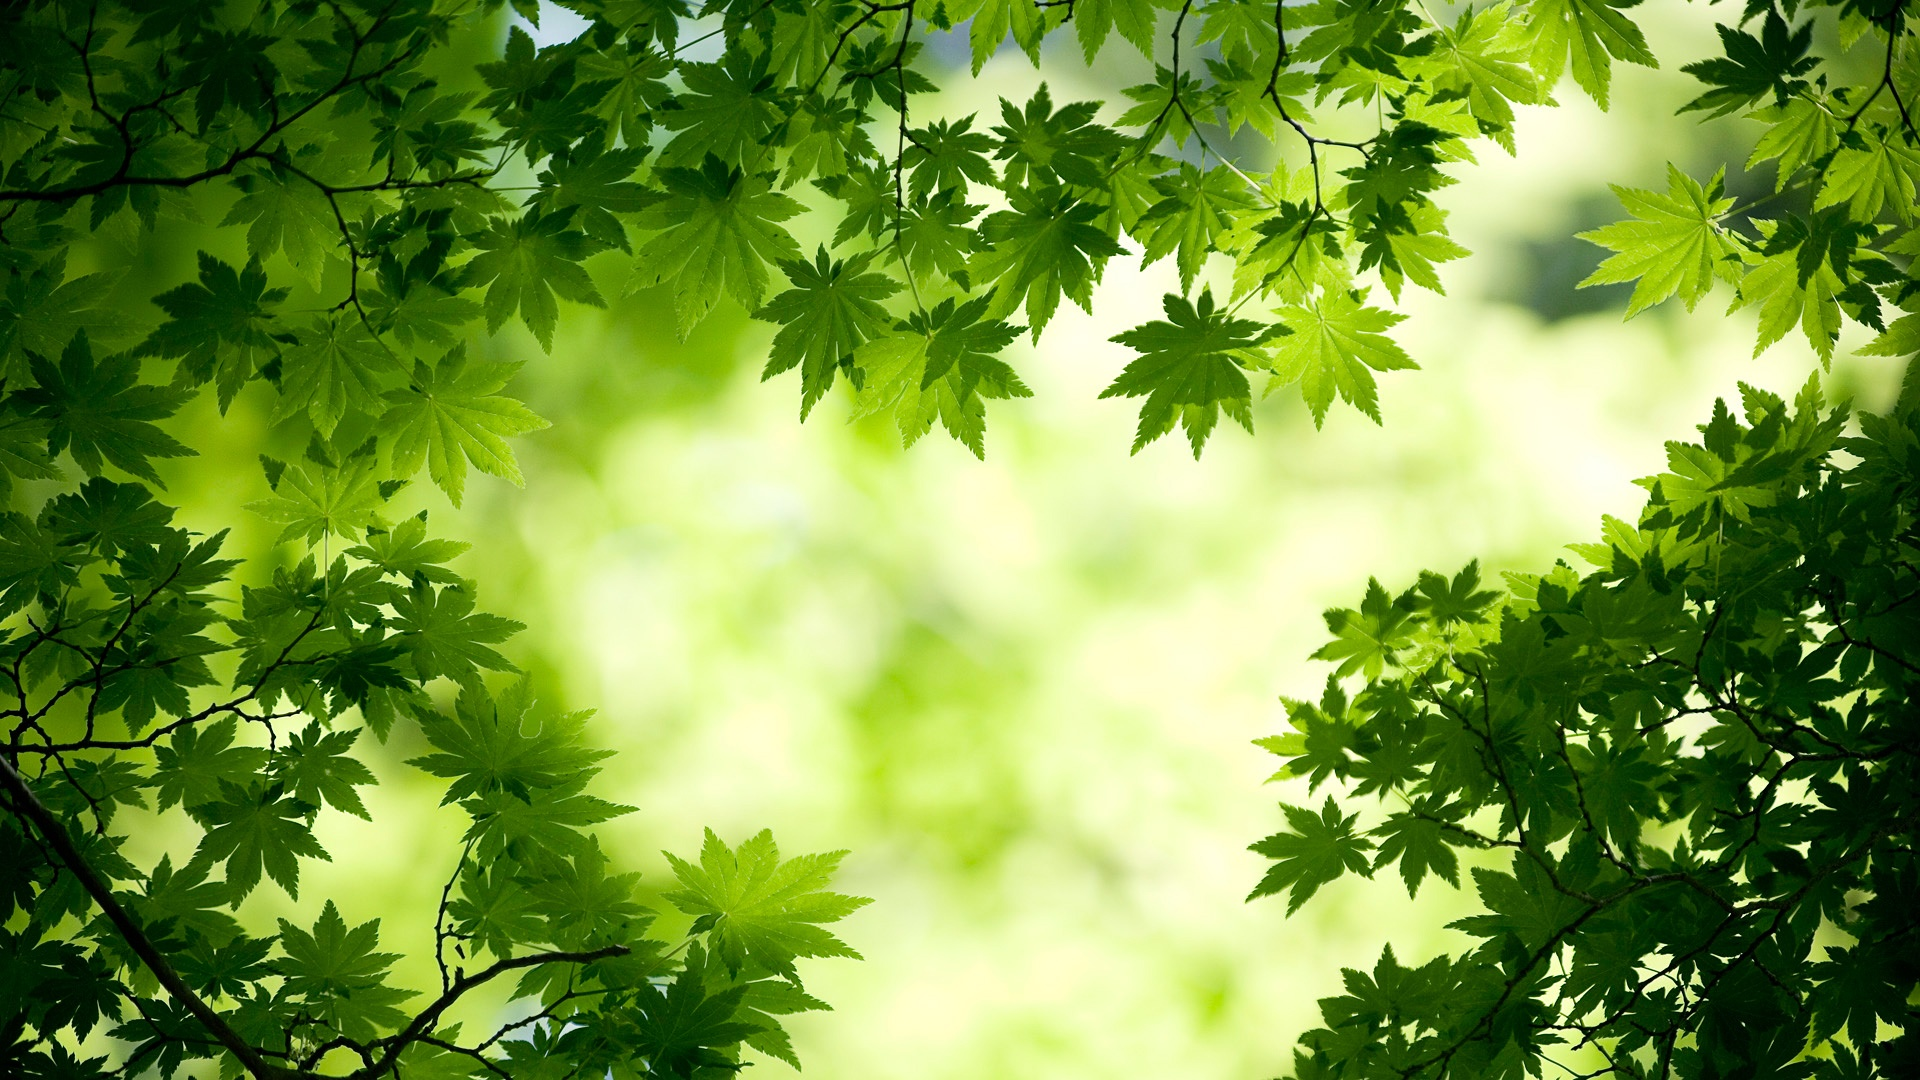 green maple leaves wallpapers in jpg format for free download